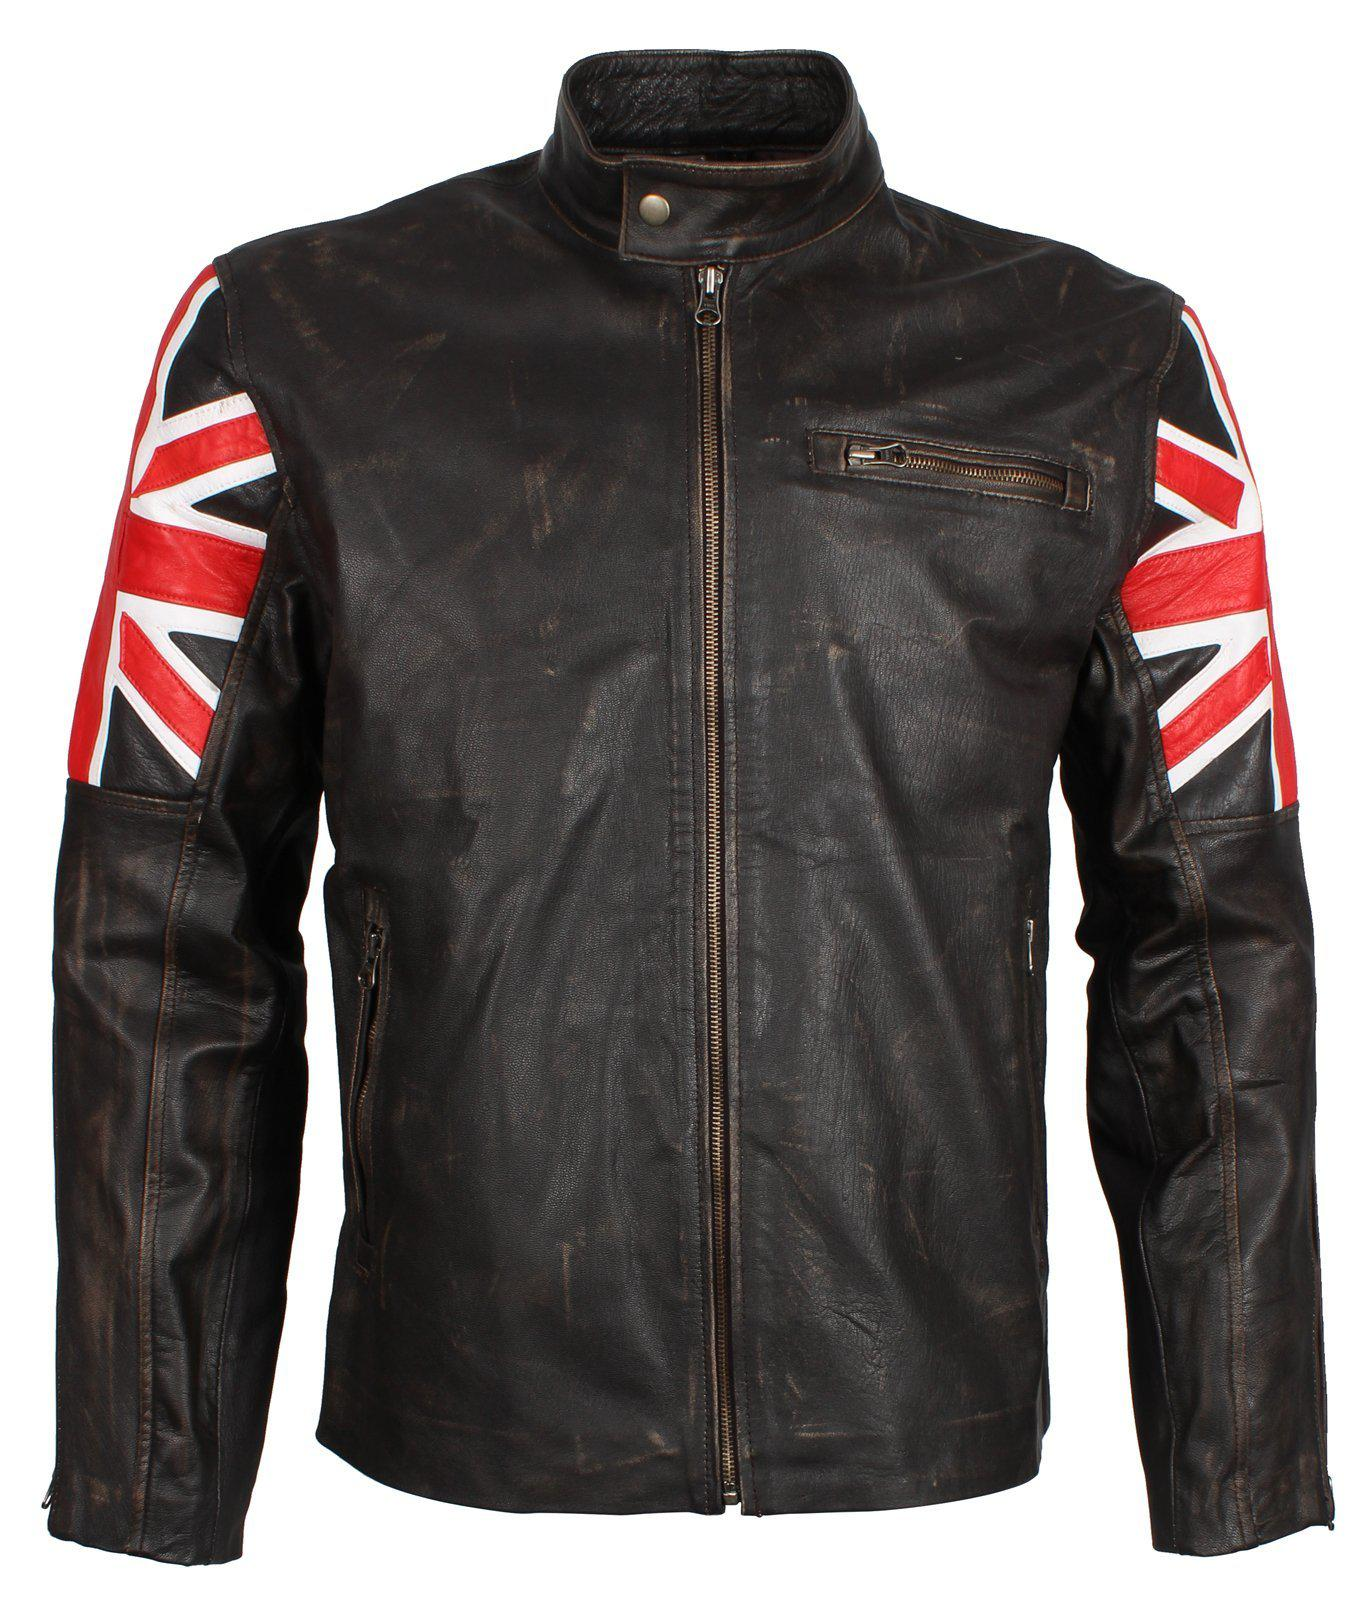 Union Jack British Flag Jacket in Distressed Leather